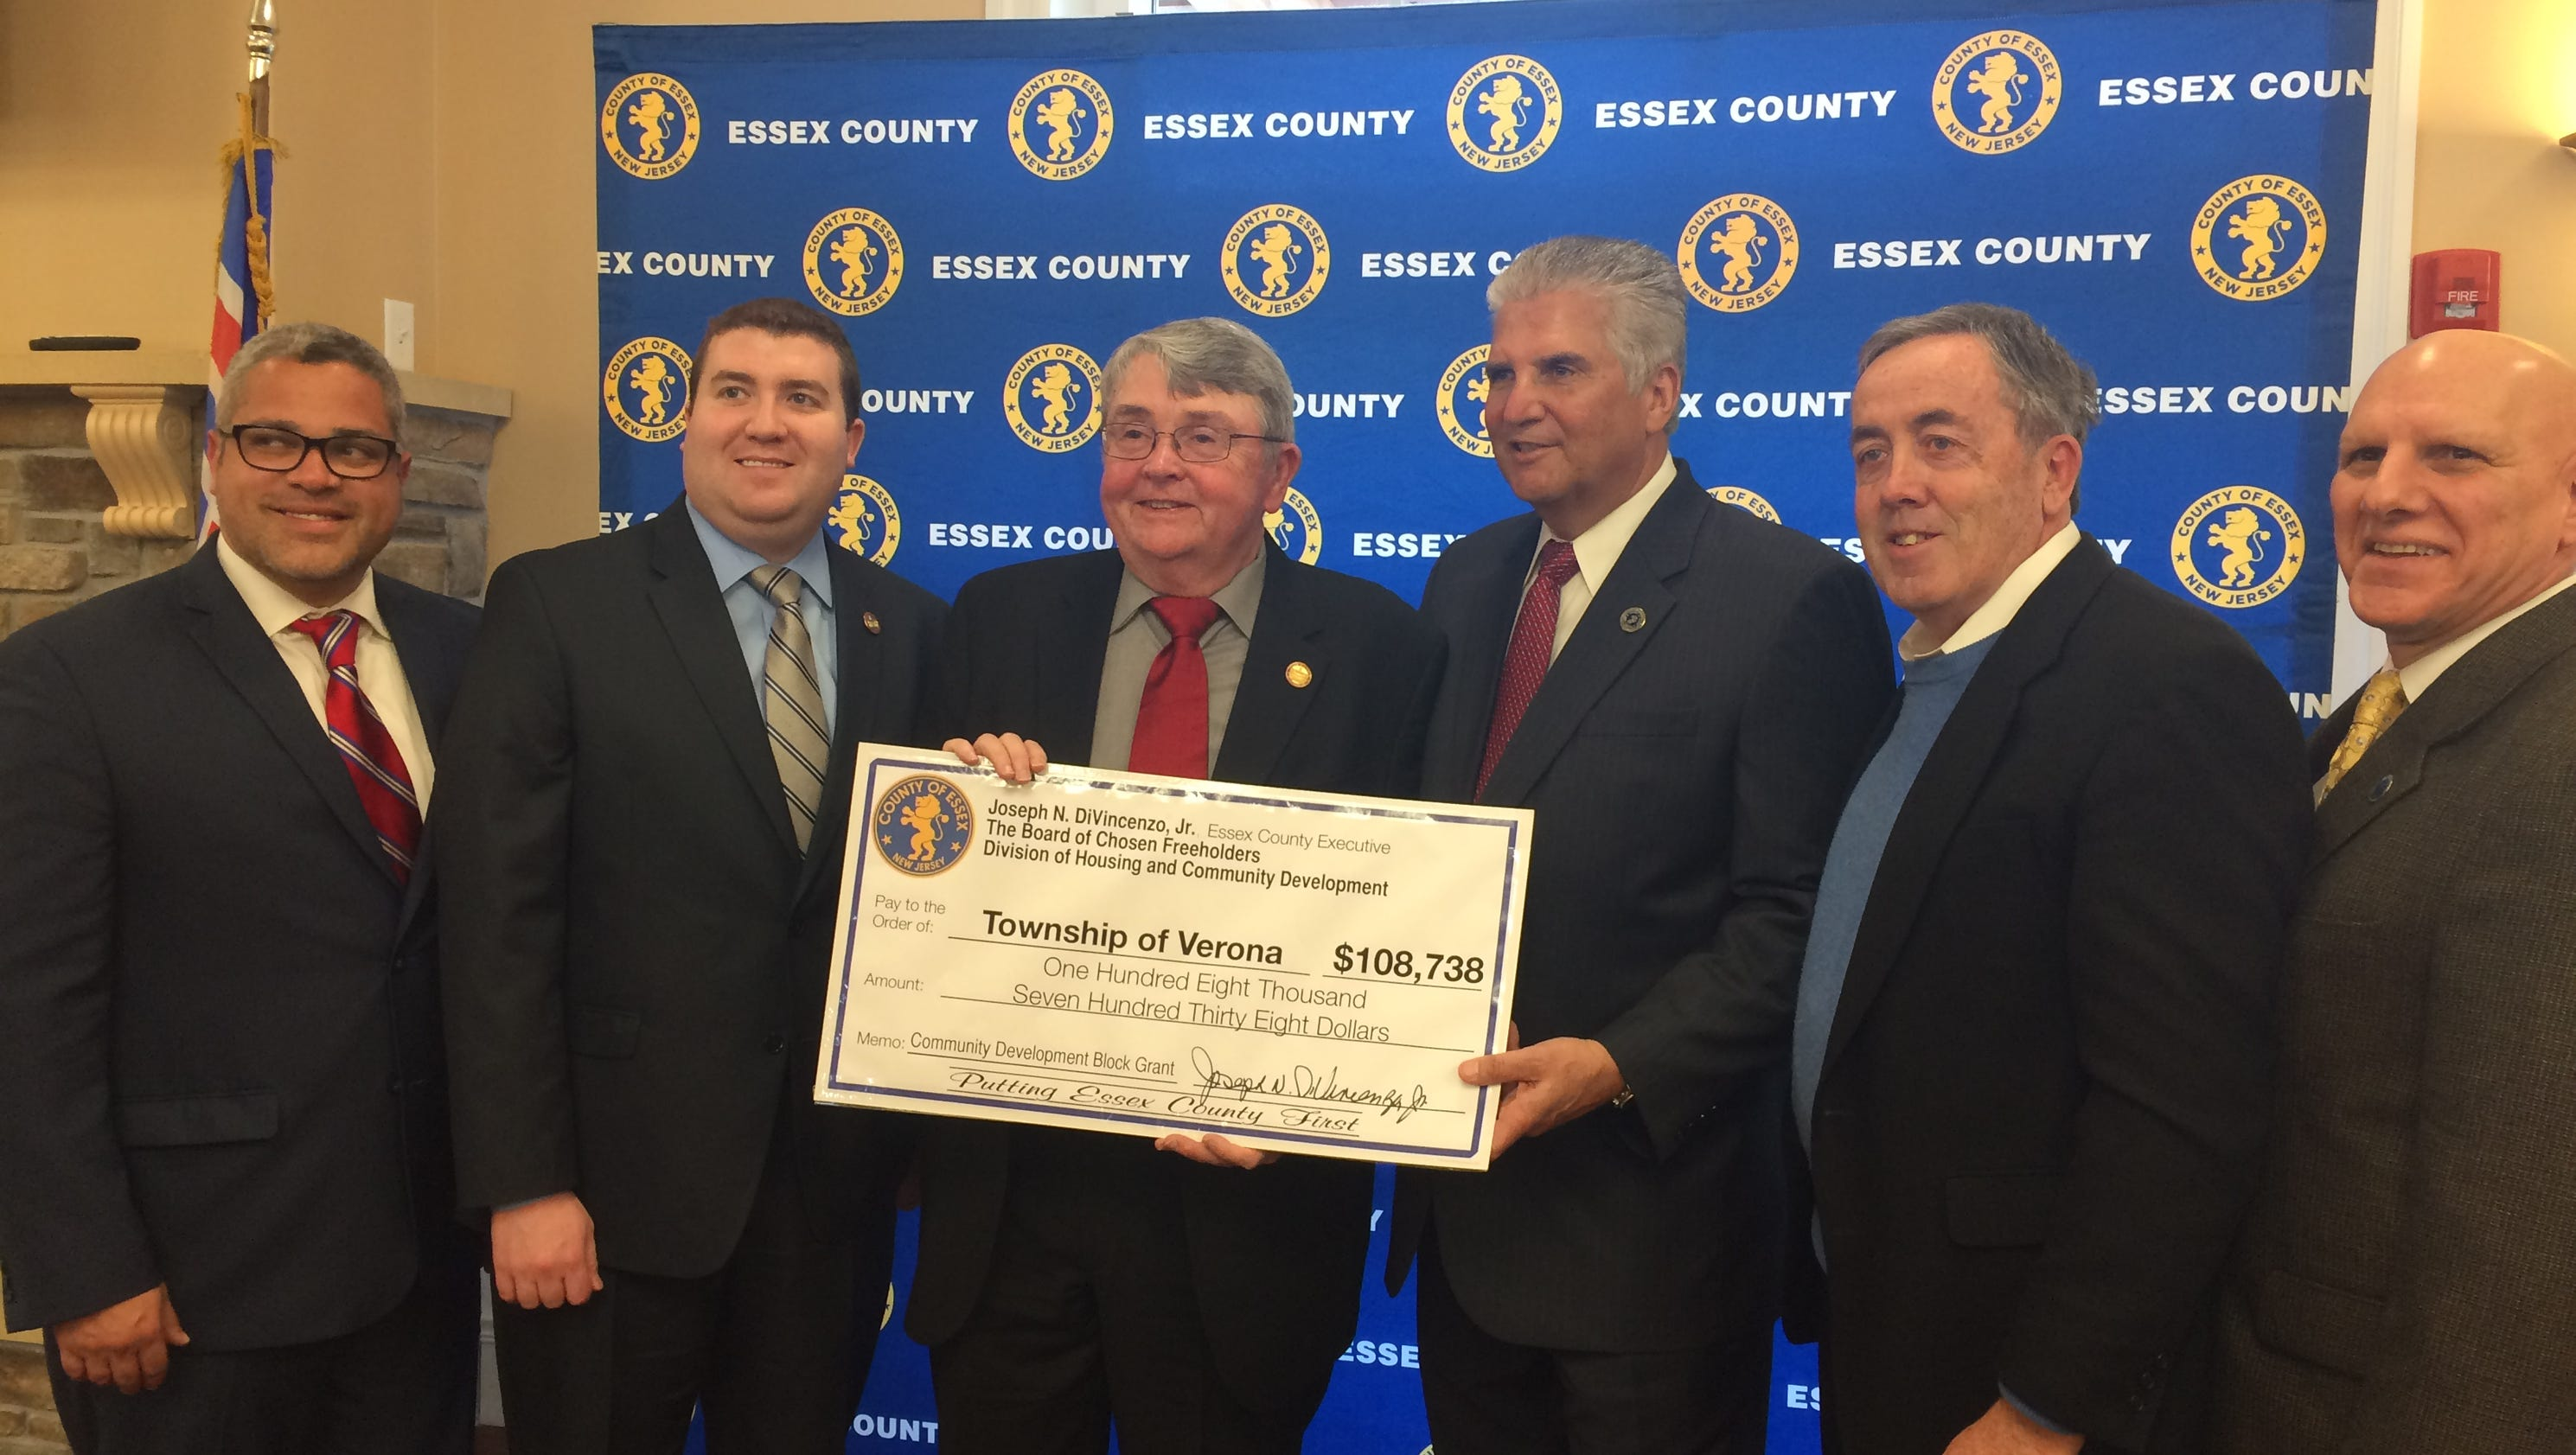 essex county towns receive $5 million in community development grants